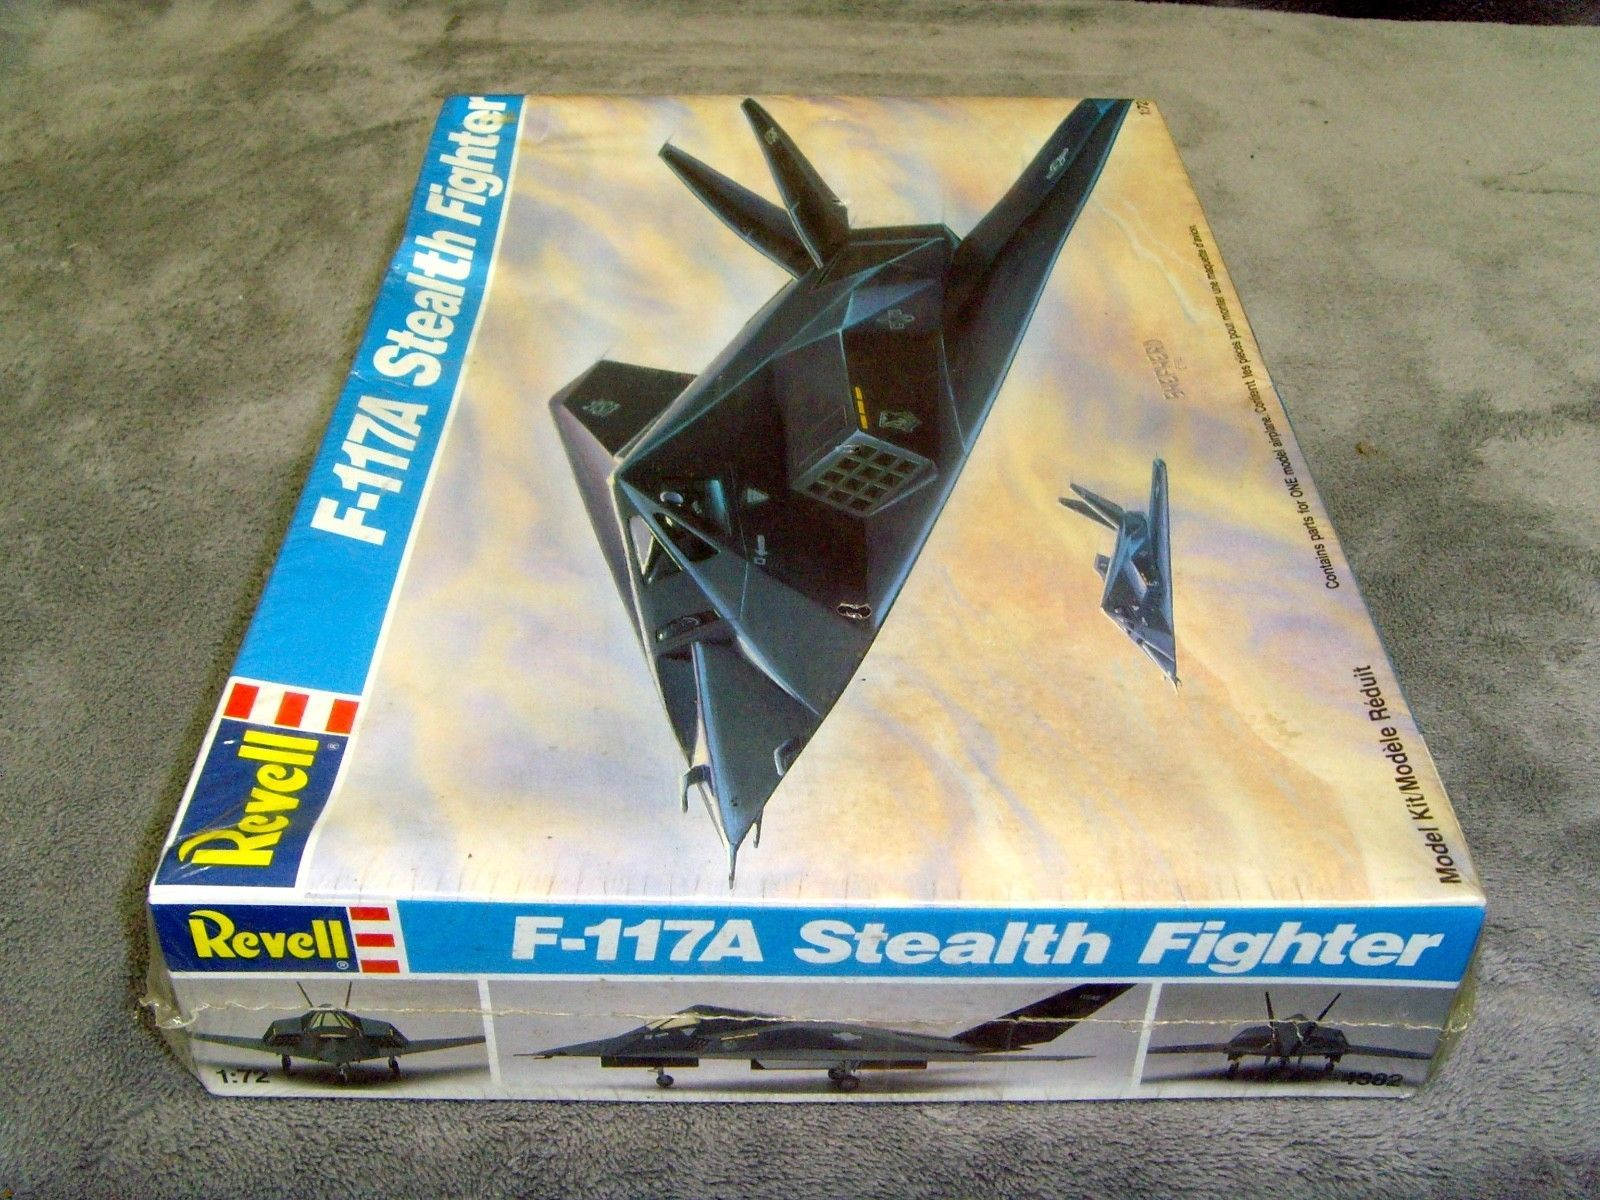 Vintage•1990•New•Sealed•Revell•F-117A Stealth Fighter•1:72 Scale•Model Kit•#4382